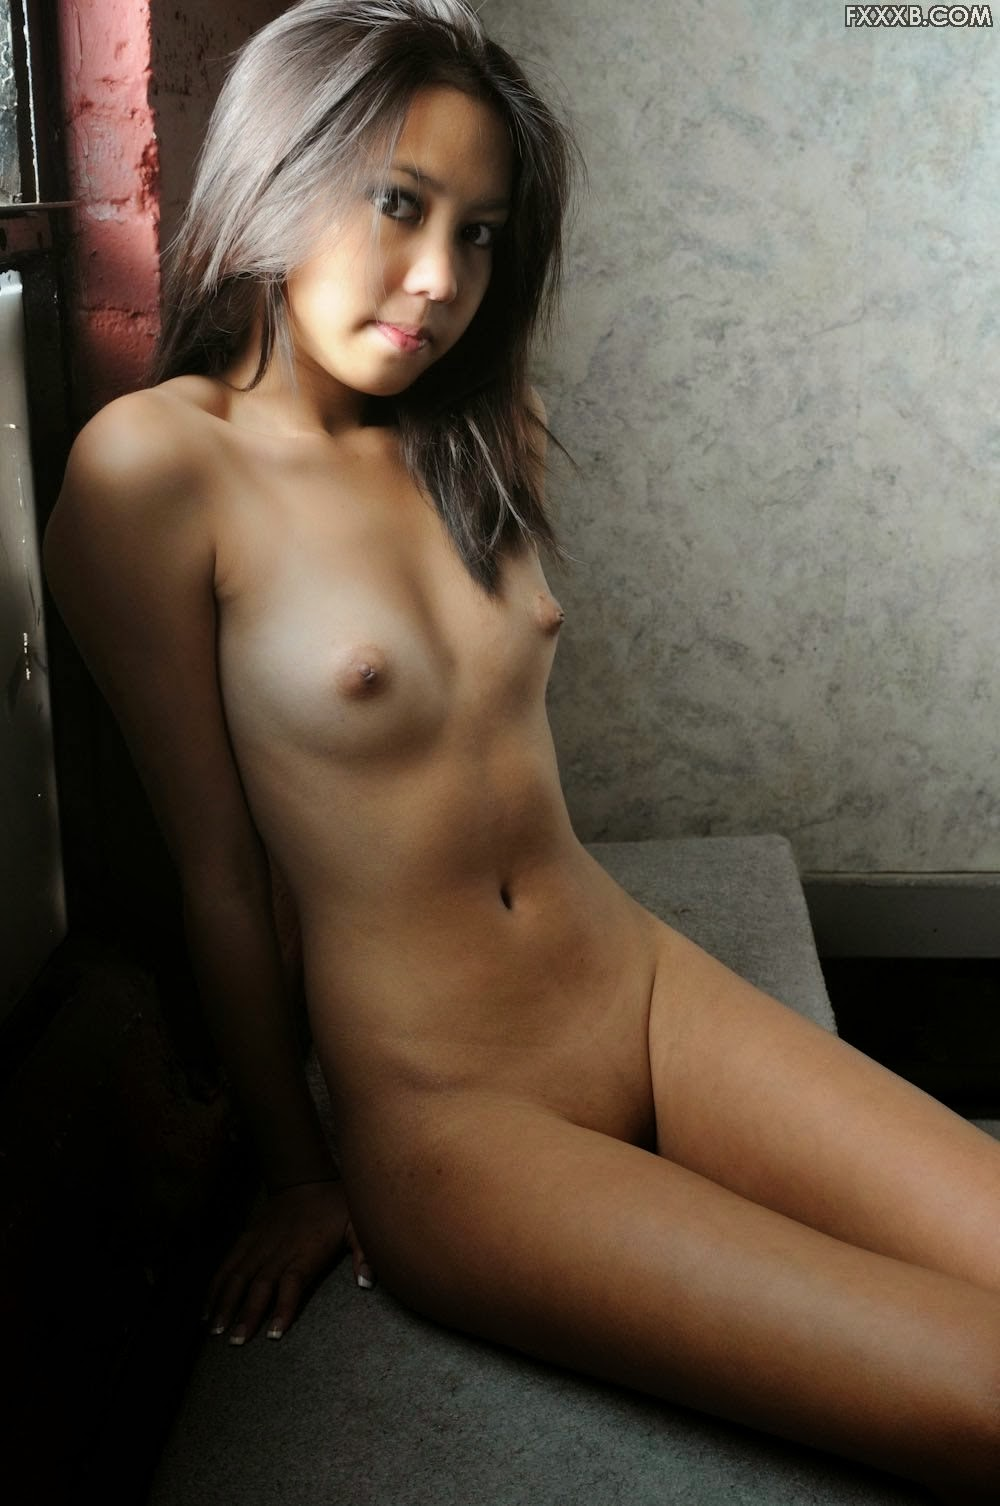 young pinay in nude